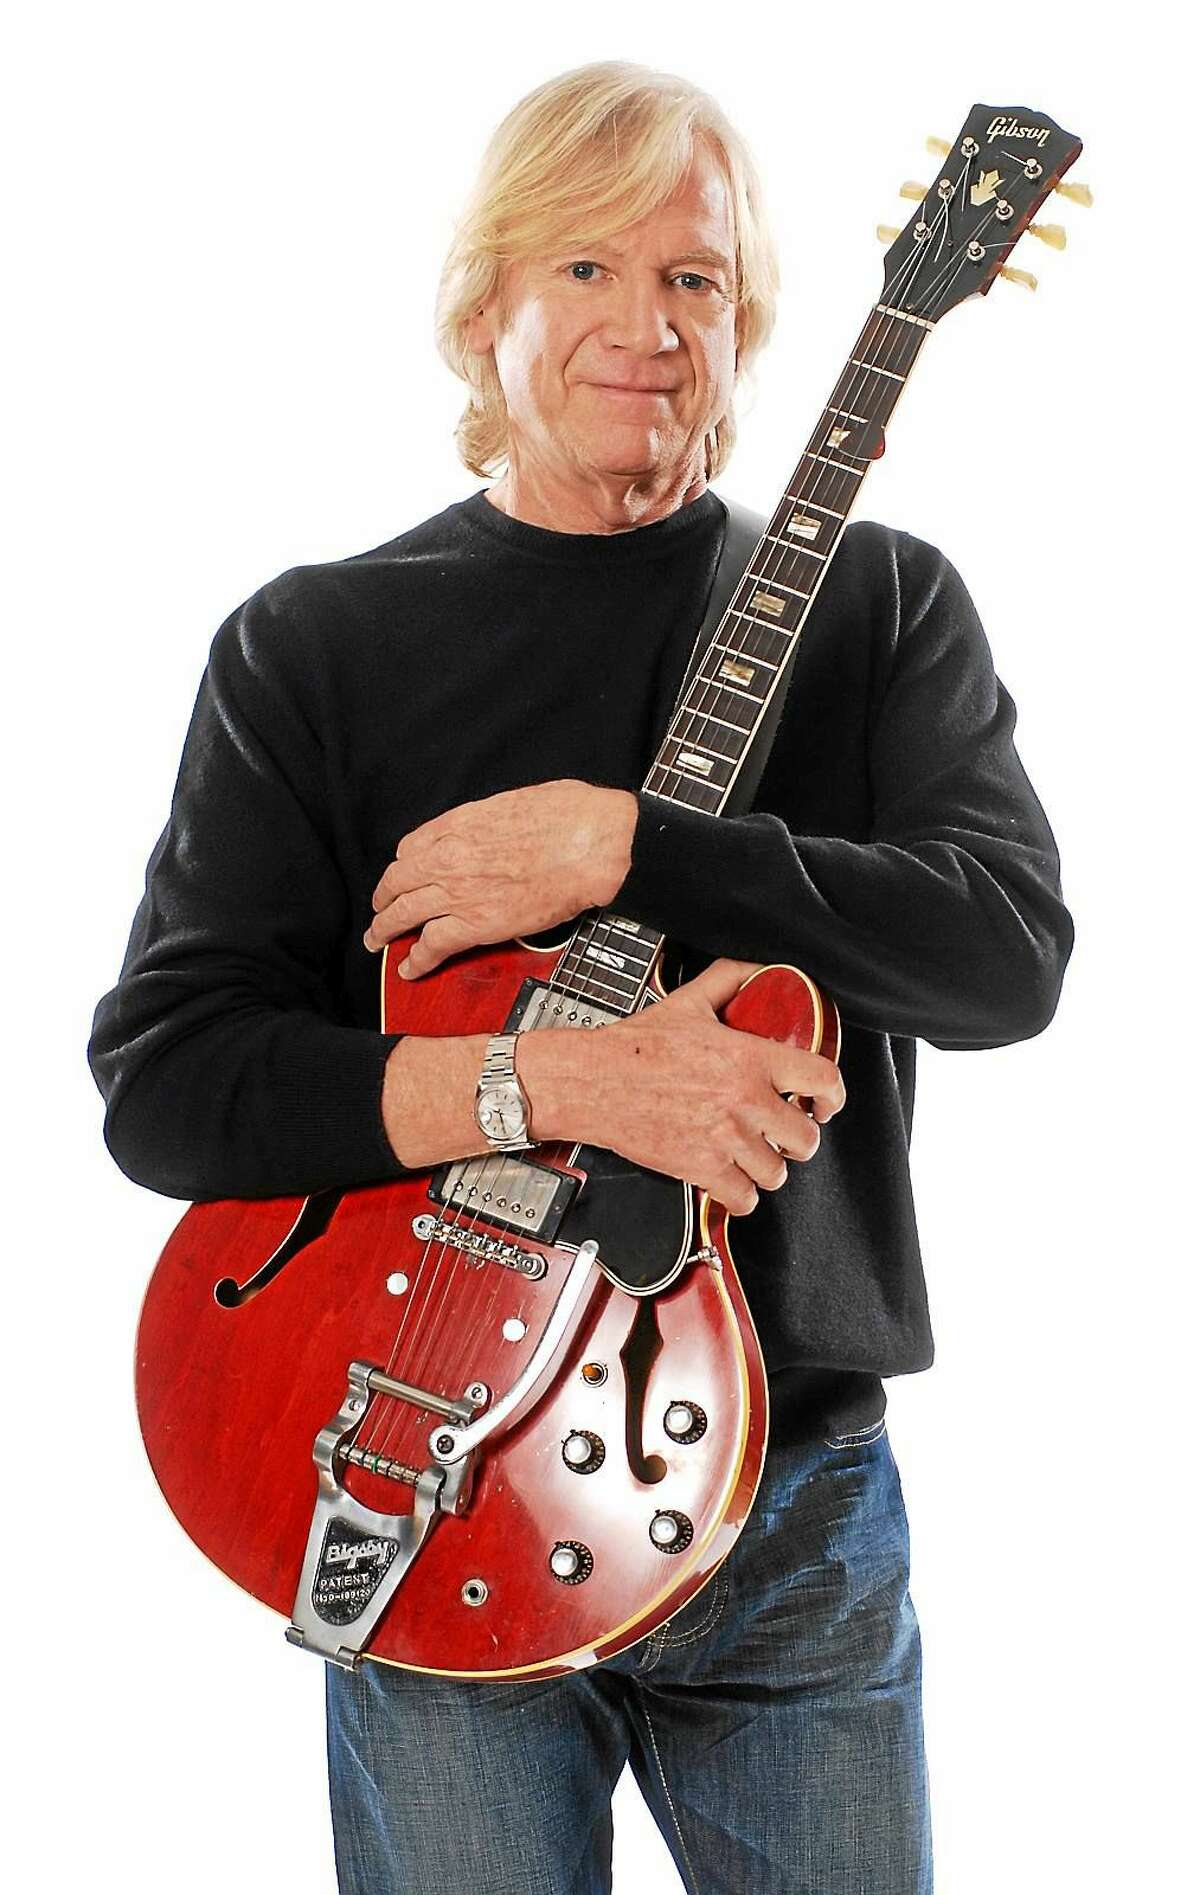 Photo courtesy of Justin Hayward Justin Hayward will appear in a rare solo performance at Infinity Hall in Hartford on Saturday, Aug. 22. The opening act is English guitarist Mike Dawes. For tickets or more information on this upcoming concert you can call toll free 866-666-6306 or visit www.infinityhall.com.